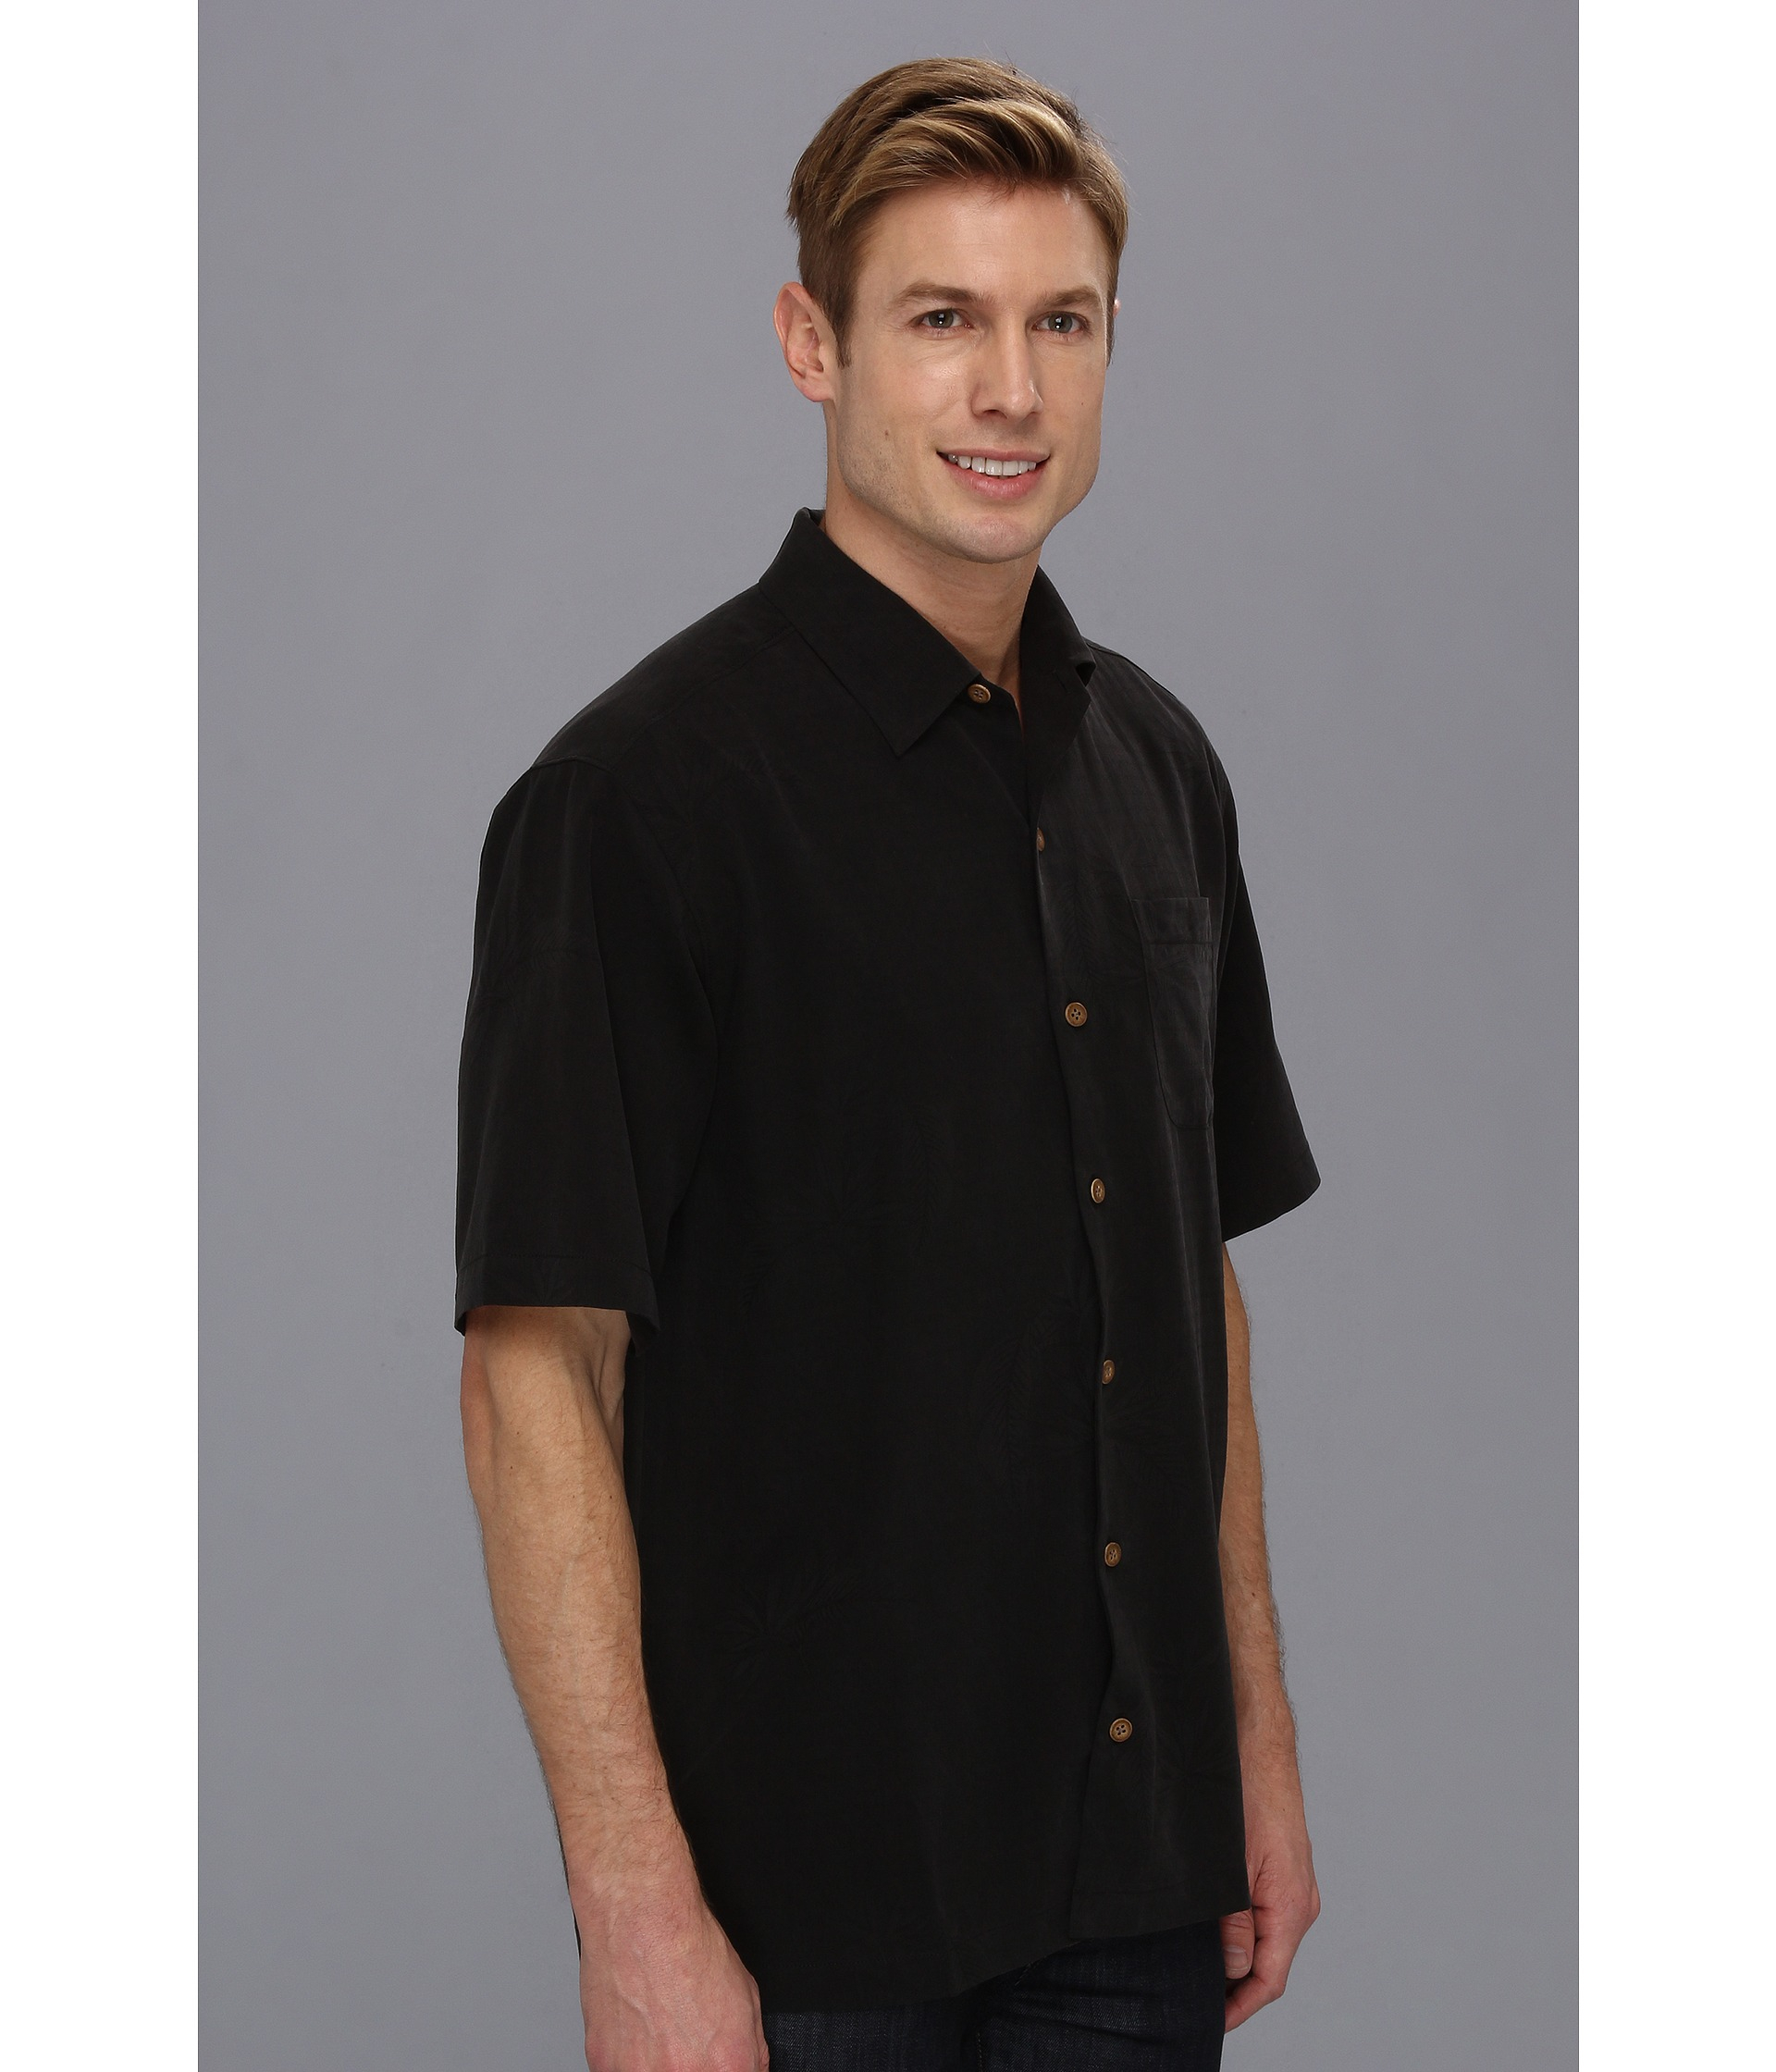 Tommy bahama days of our wines camp shirt in black for men for Tommy bahama christmas shirt 2014